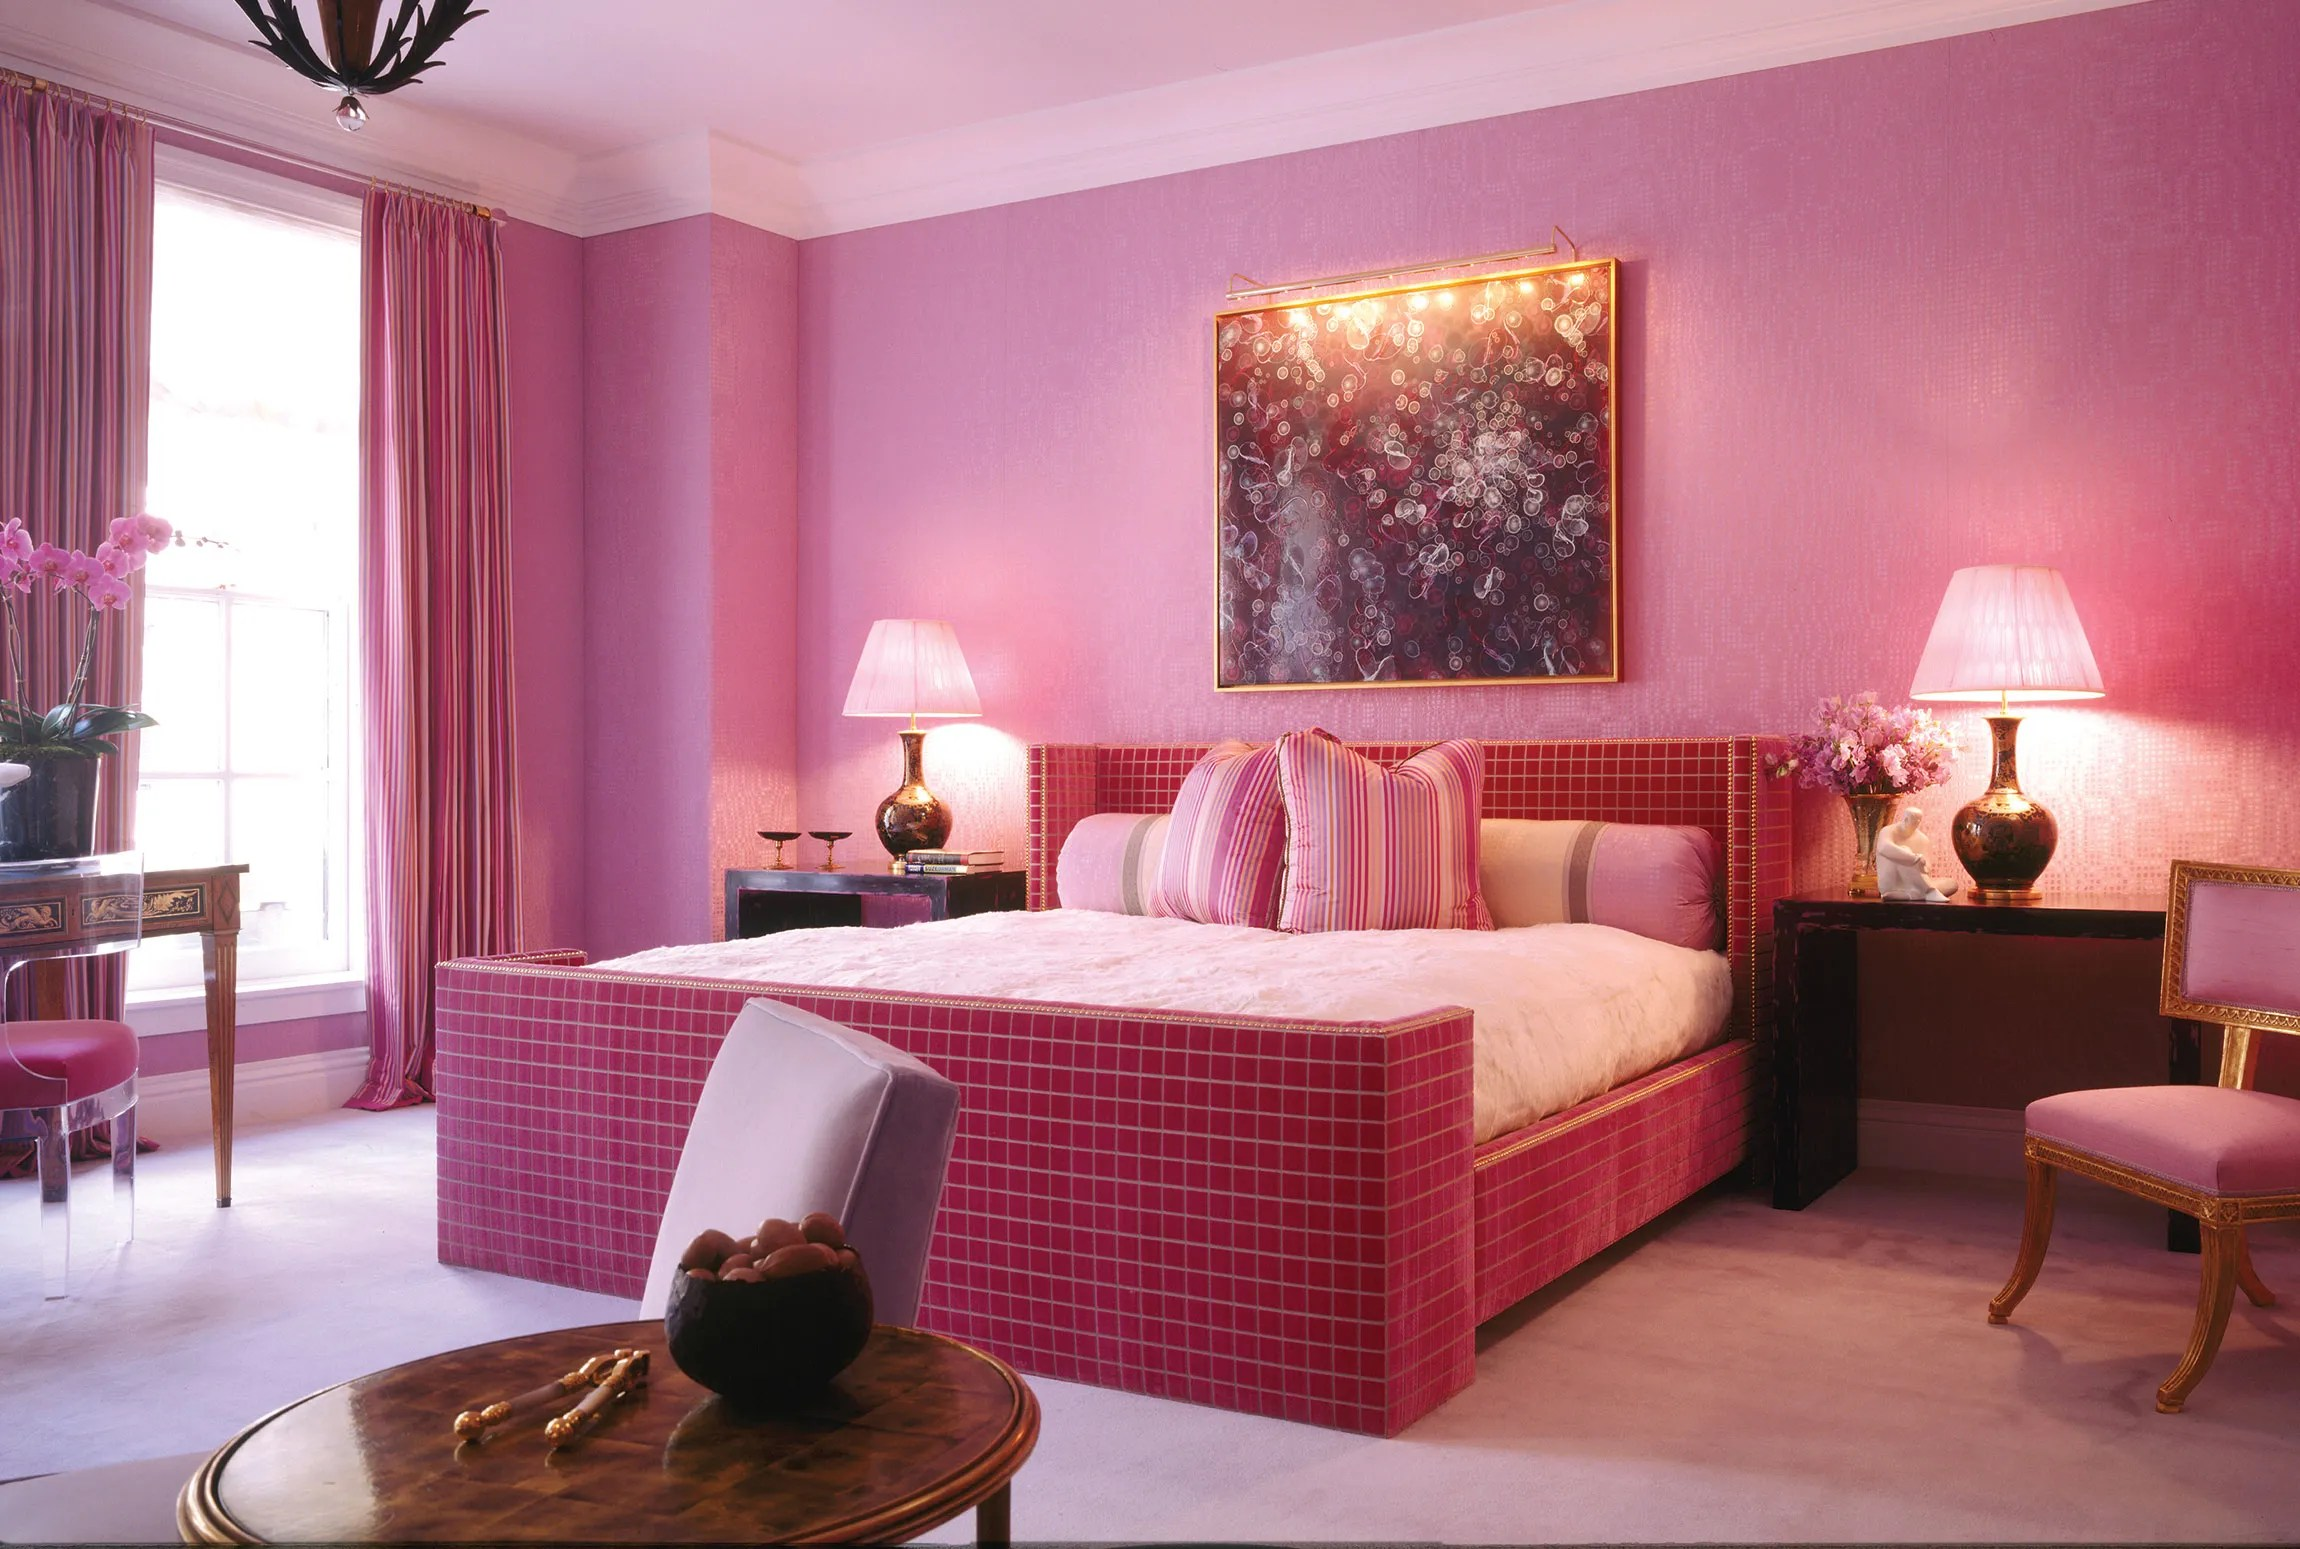 Image Room Decoration 7 Must Follow Steps For Decorating With Pink Architectural